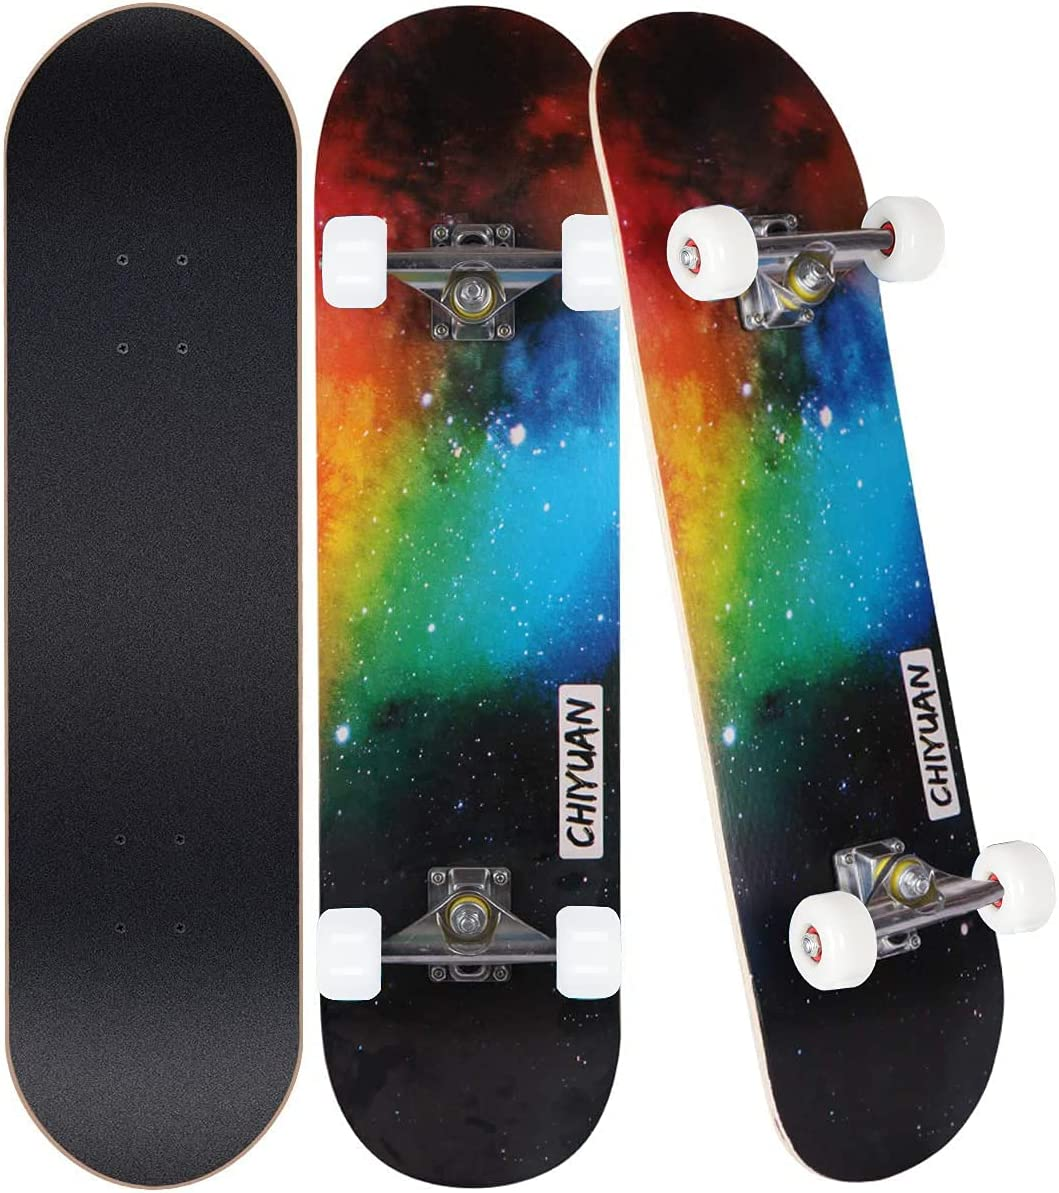 ArgoHome Skateboards for Beginners Don't miss the campaign Complete 31